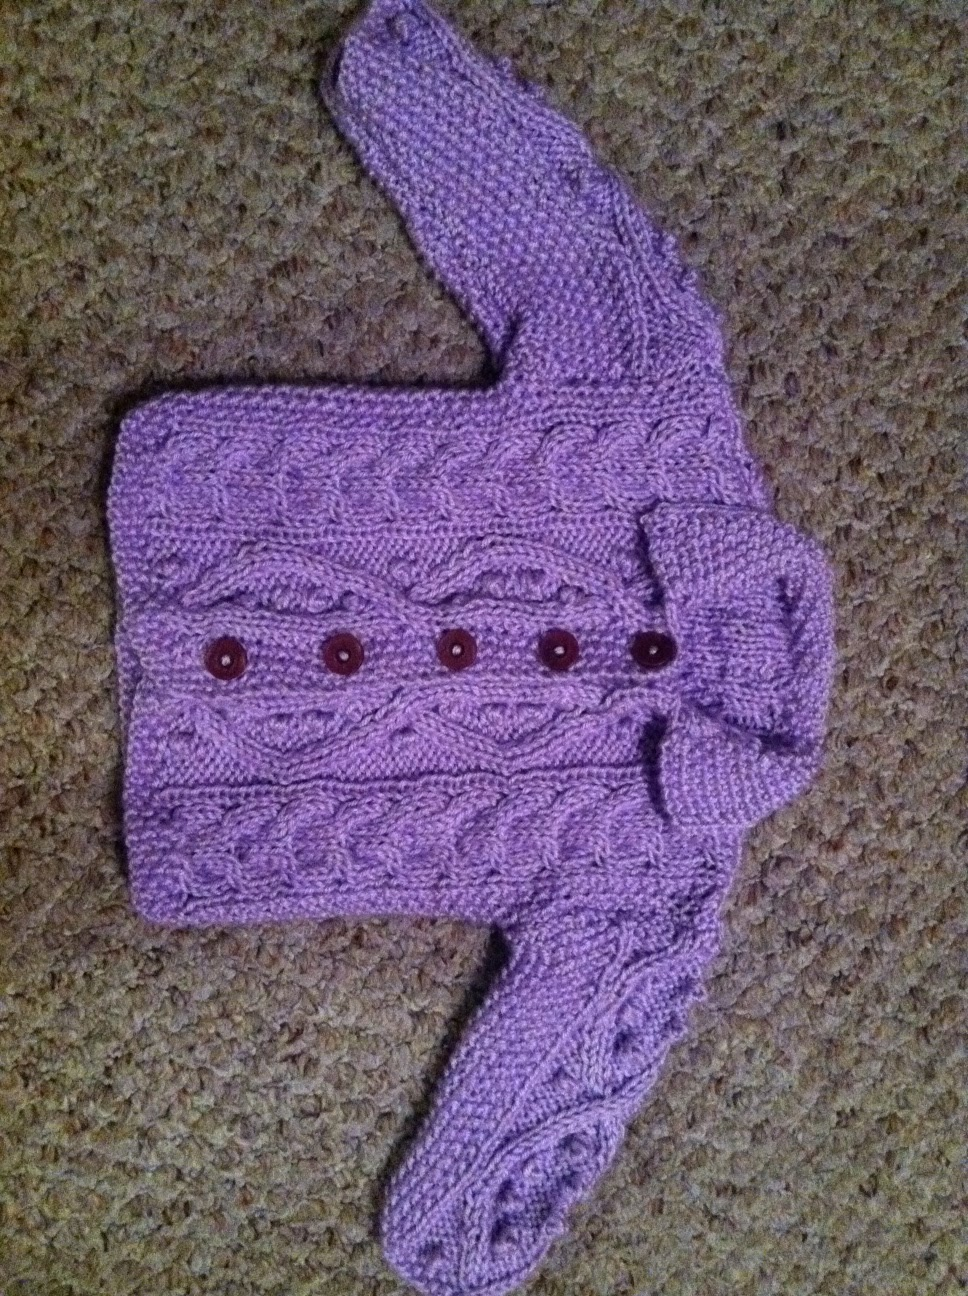 Knitting Vintage Things : All things delightful baby sweater plus vintage knitting tips